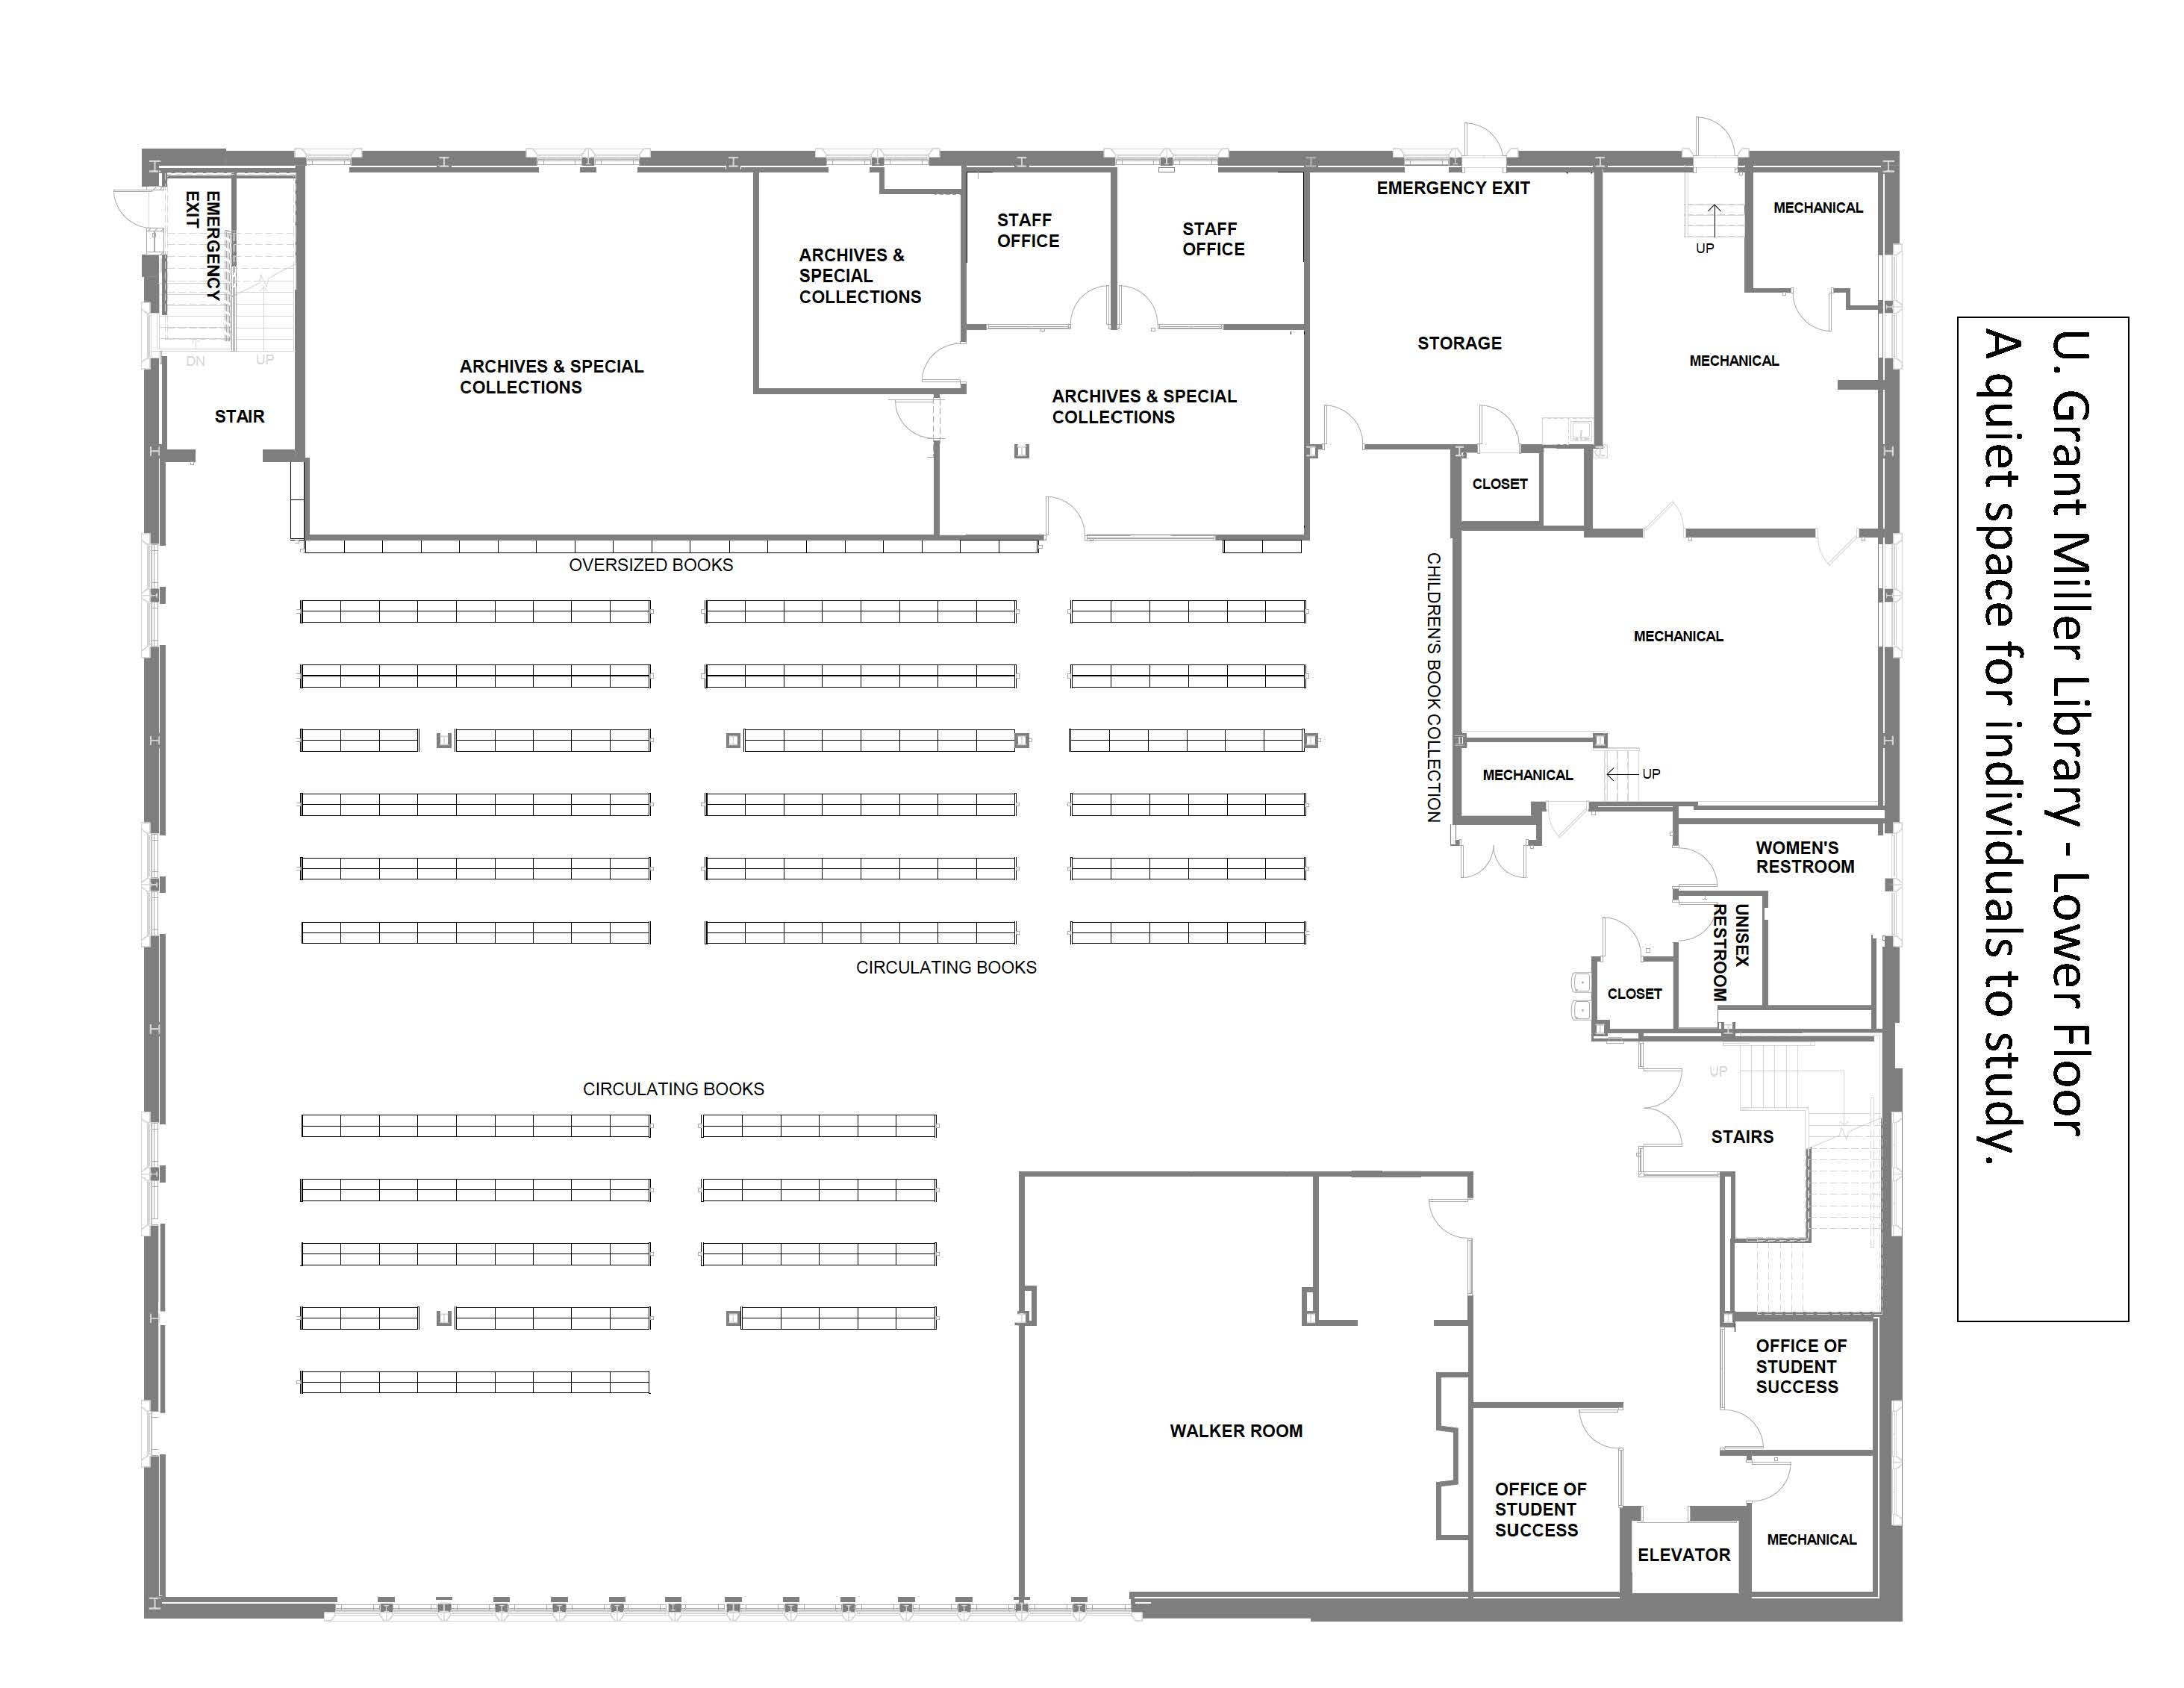 Floor plan for lower level of the library